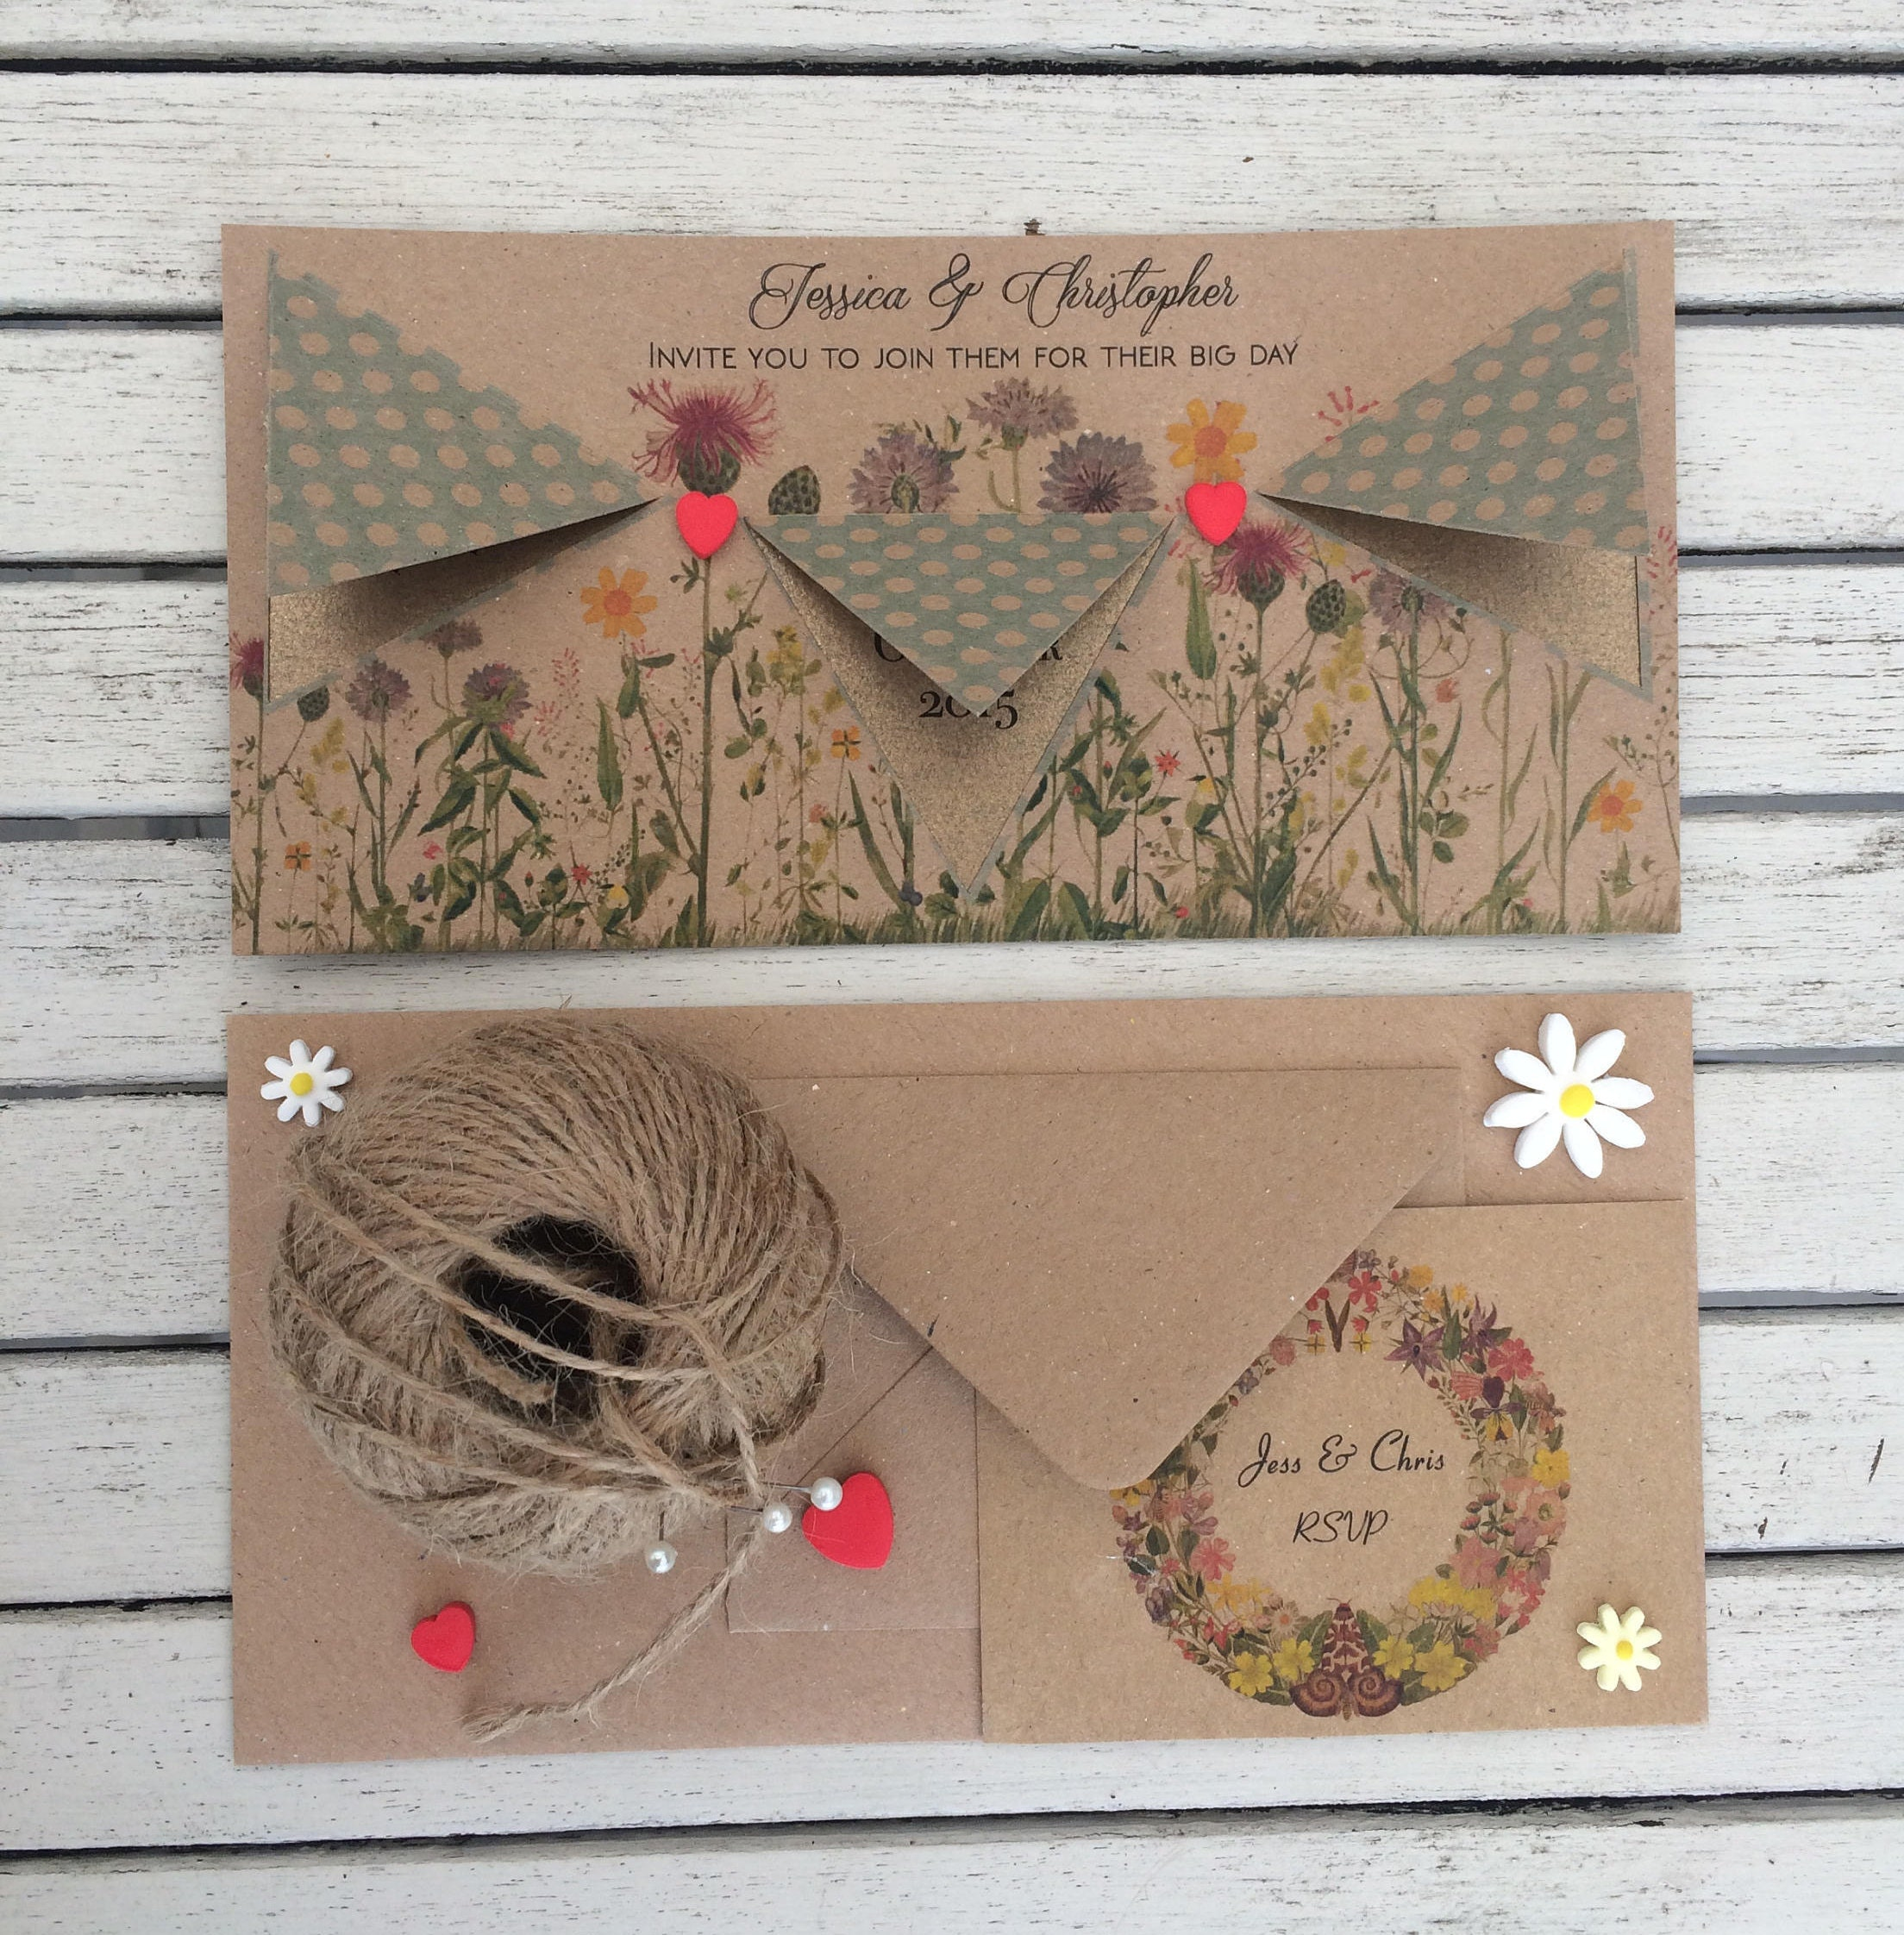 Vintage floral invite  Blue bunting wedding invite cards  Rustic country wedding invitation   RSVP cards